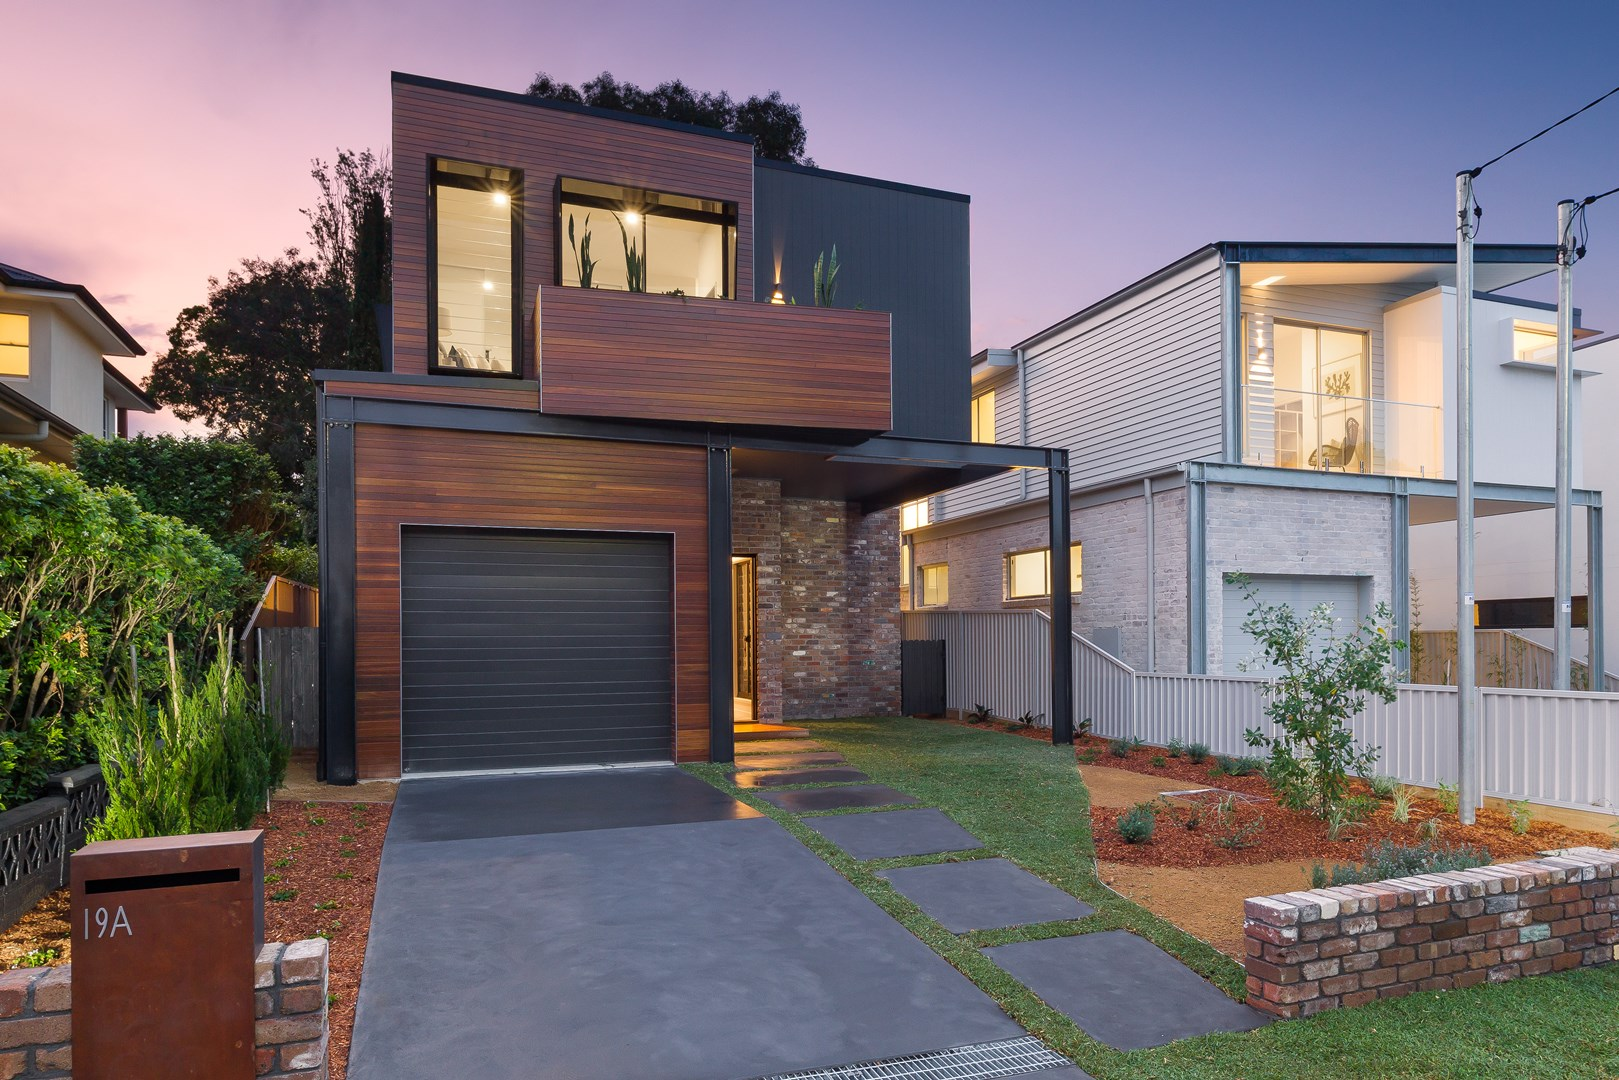 Picture of 19a Holly Street, Caringbah South